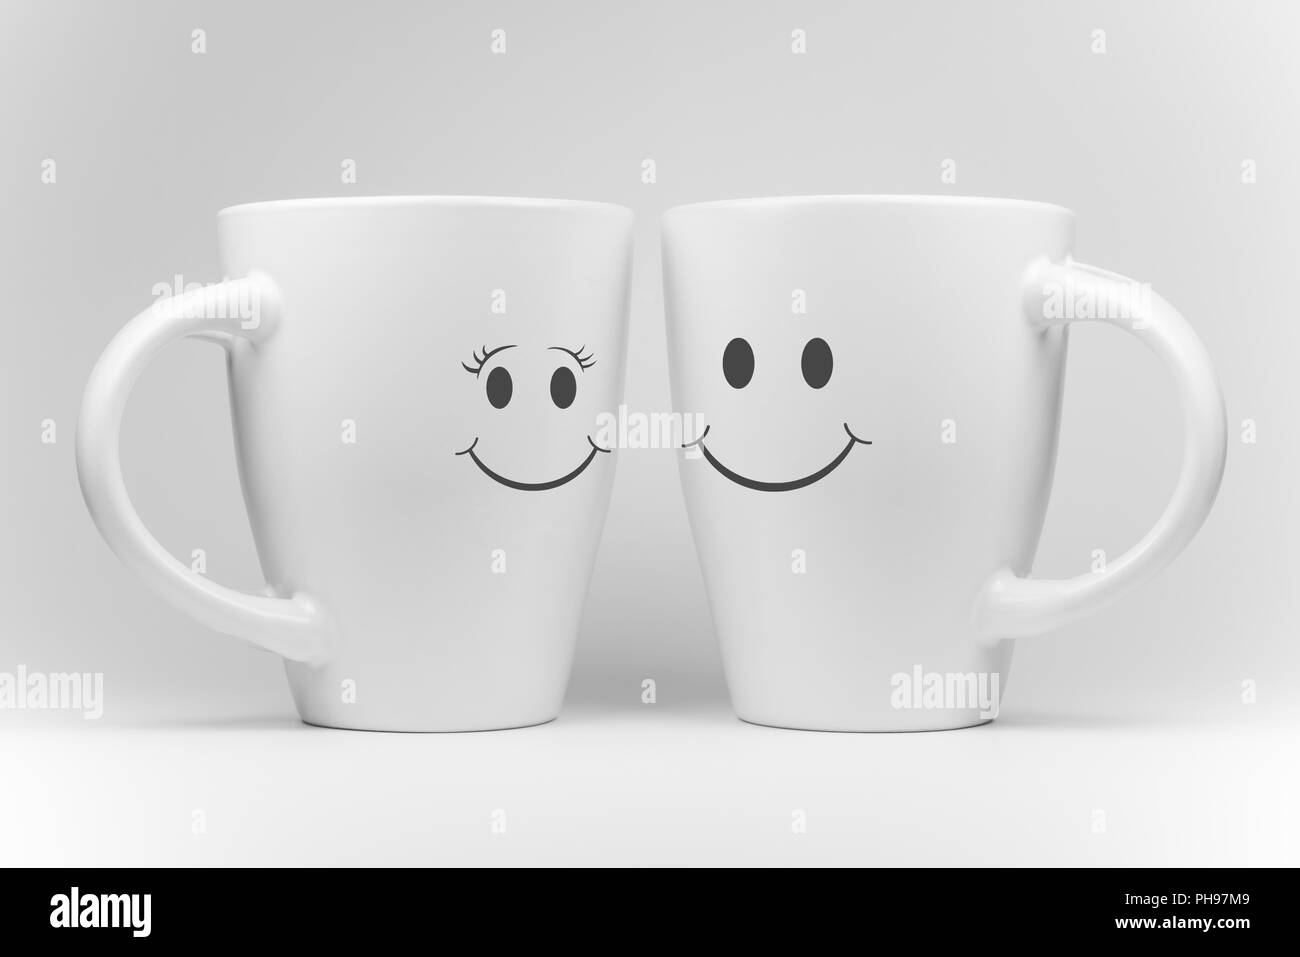 Two white mugs with facial expressions - Stock Image